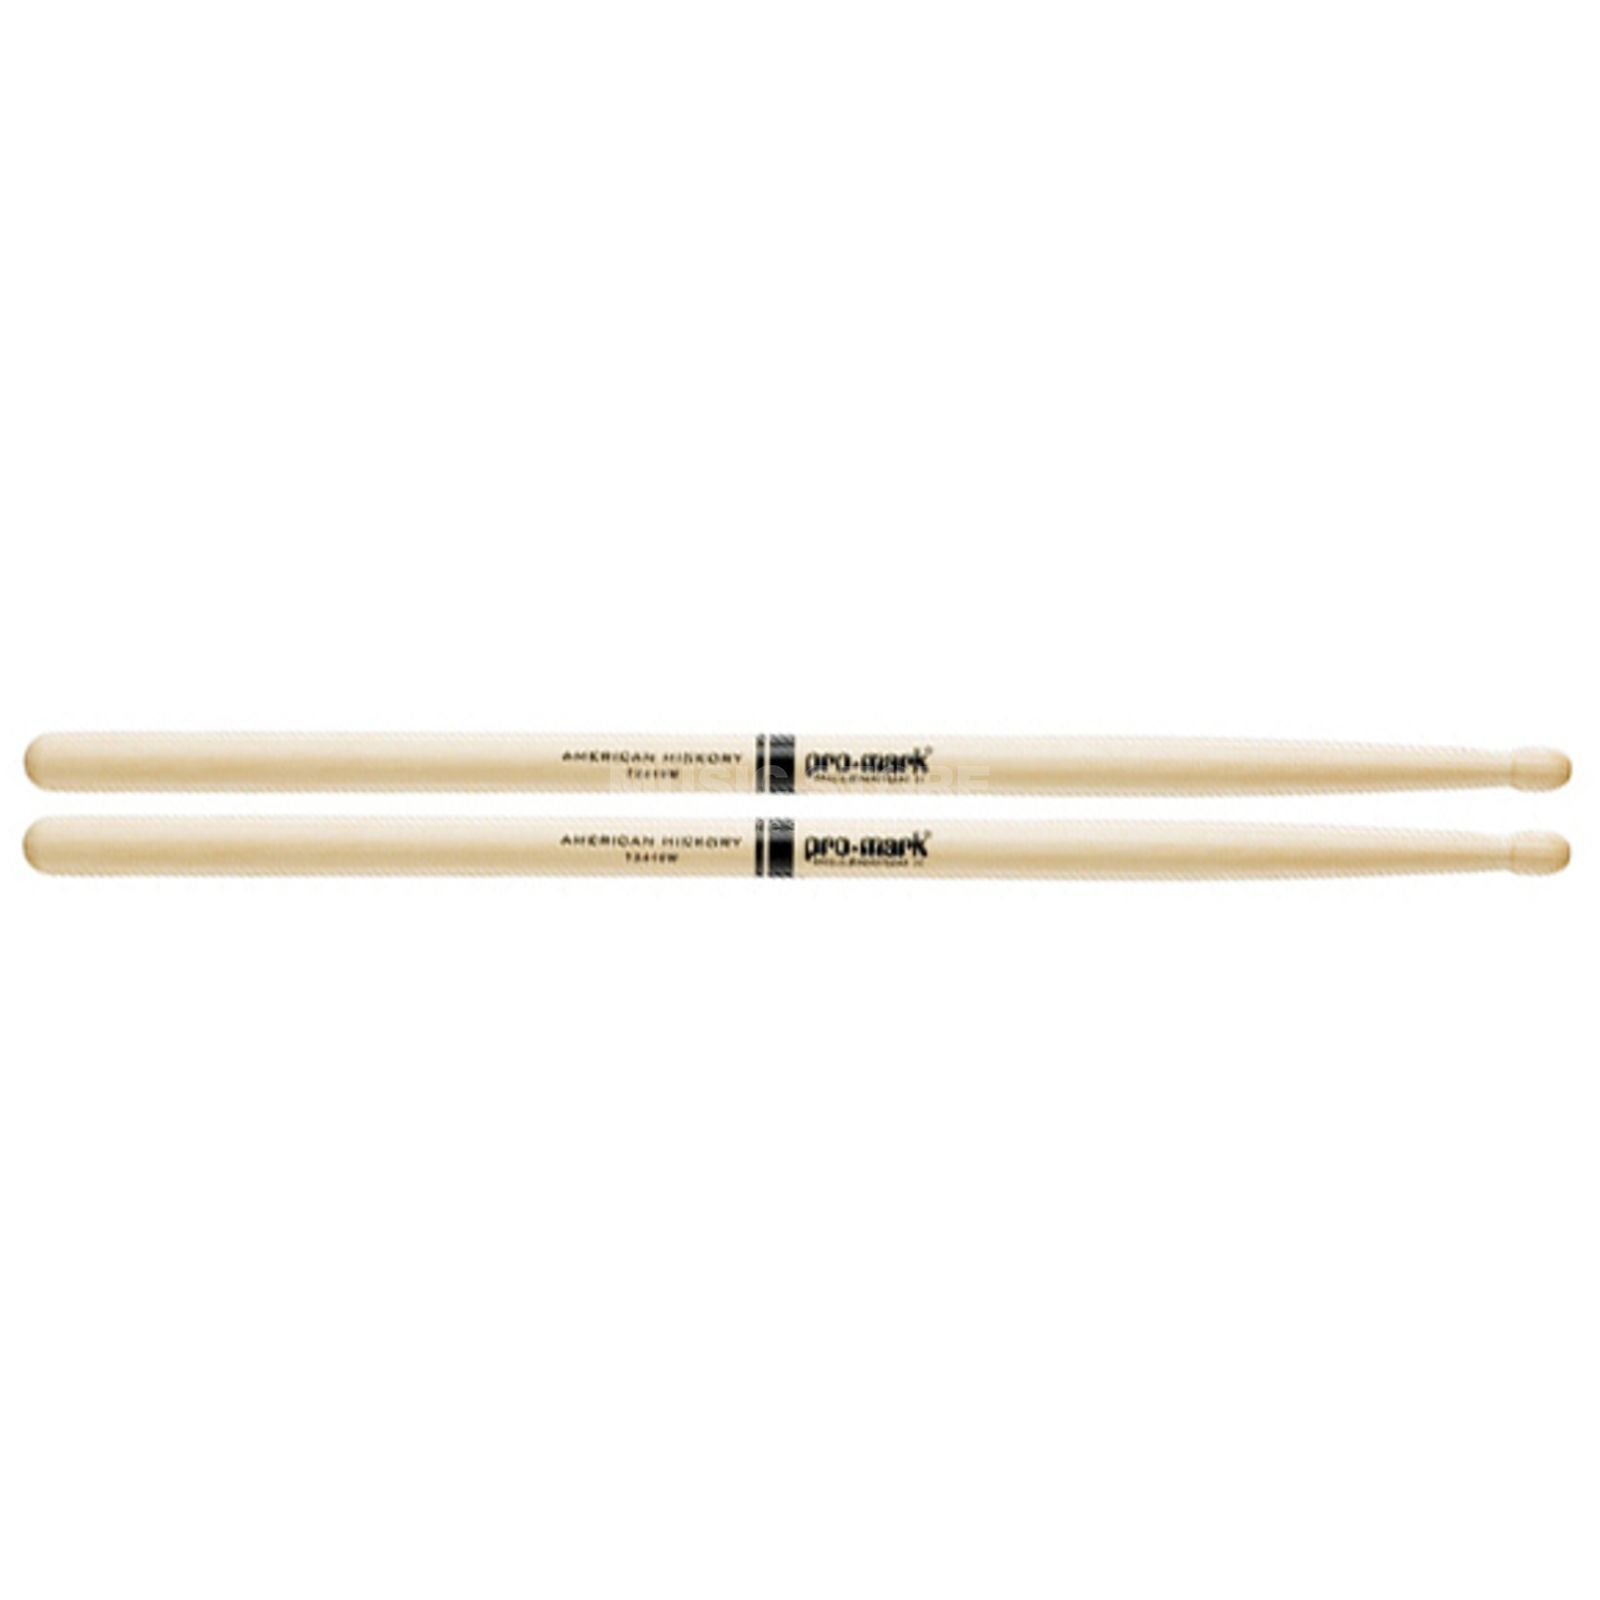 PRO-MARK TX419W Hickory Sticks, Wood Tip Product Image